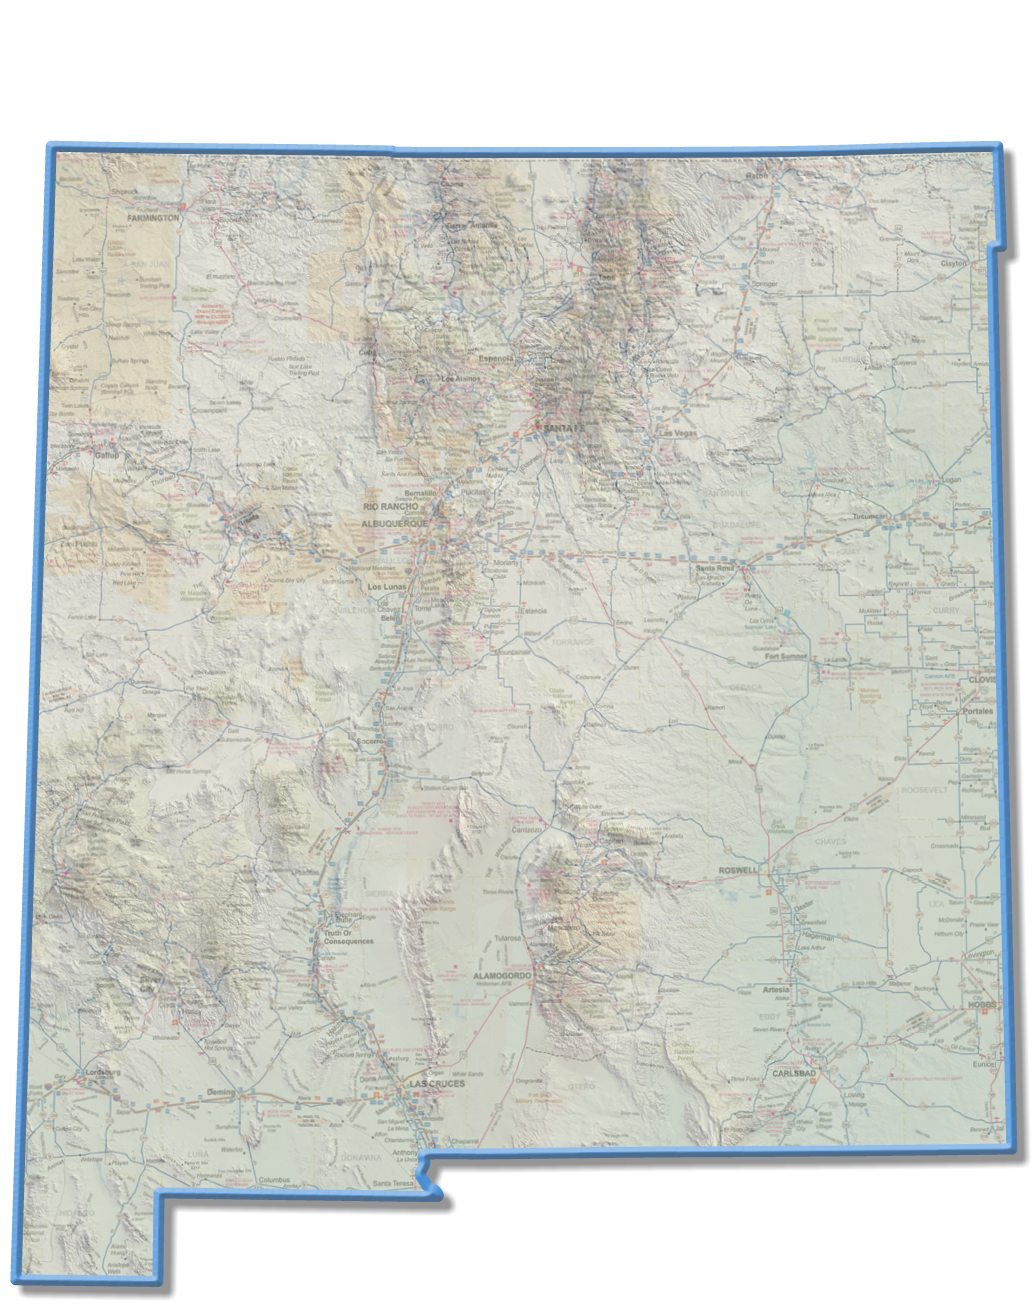 New Mexico Space Trail Map